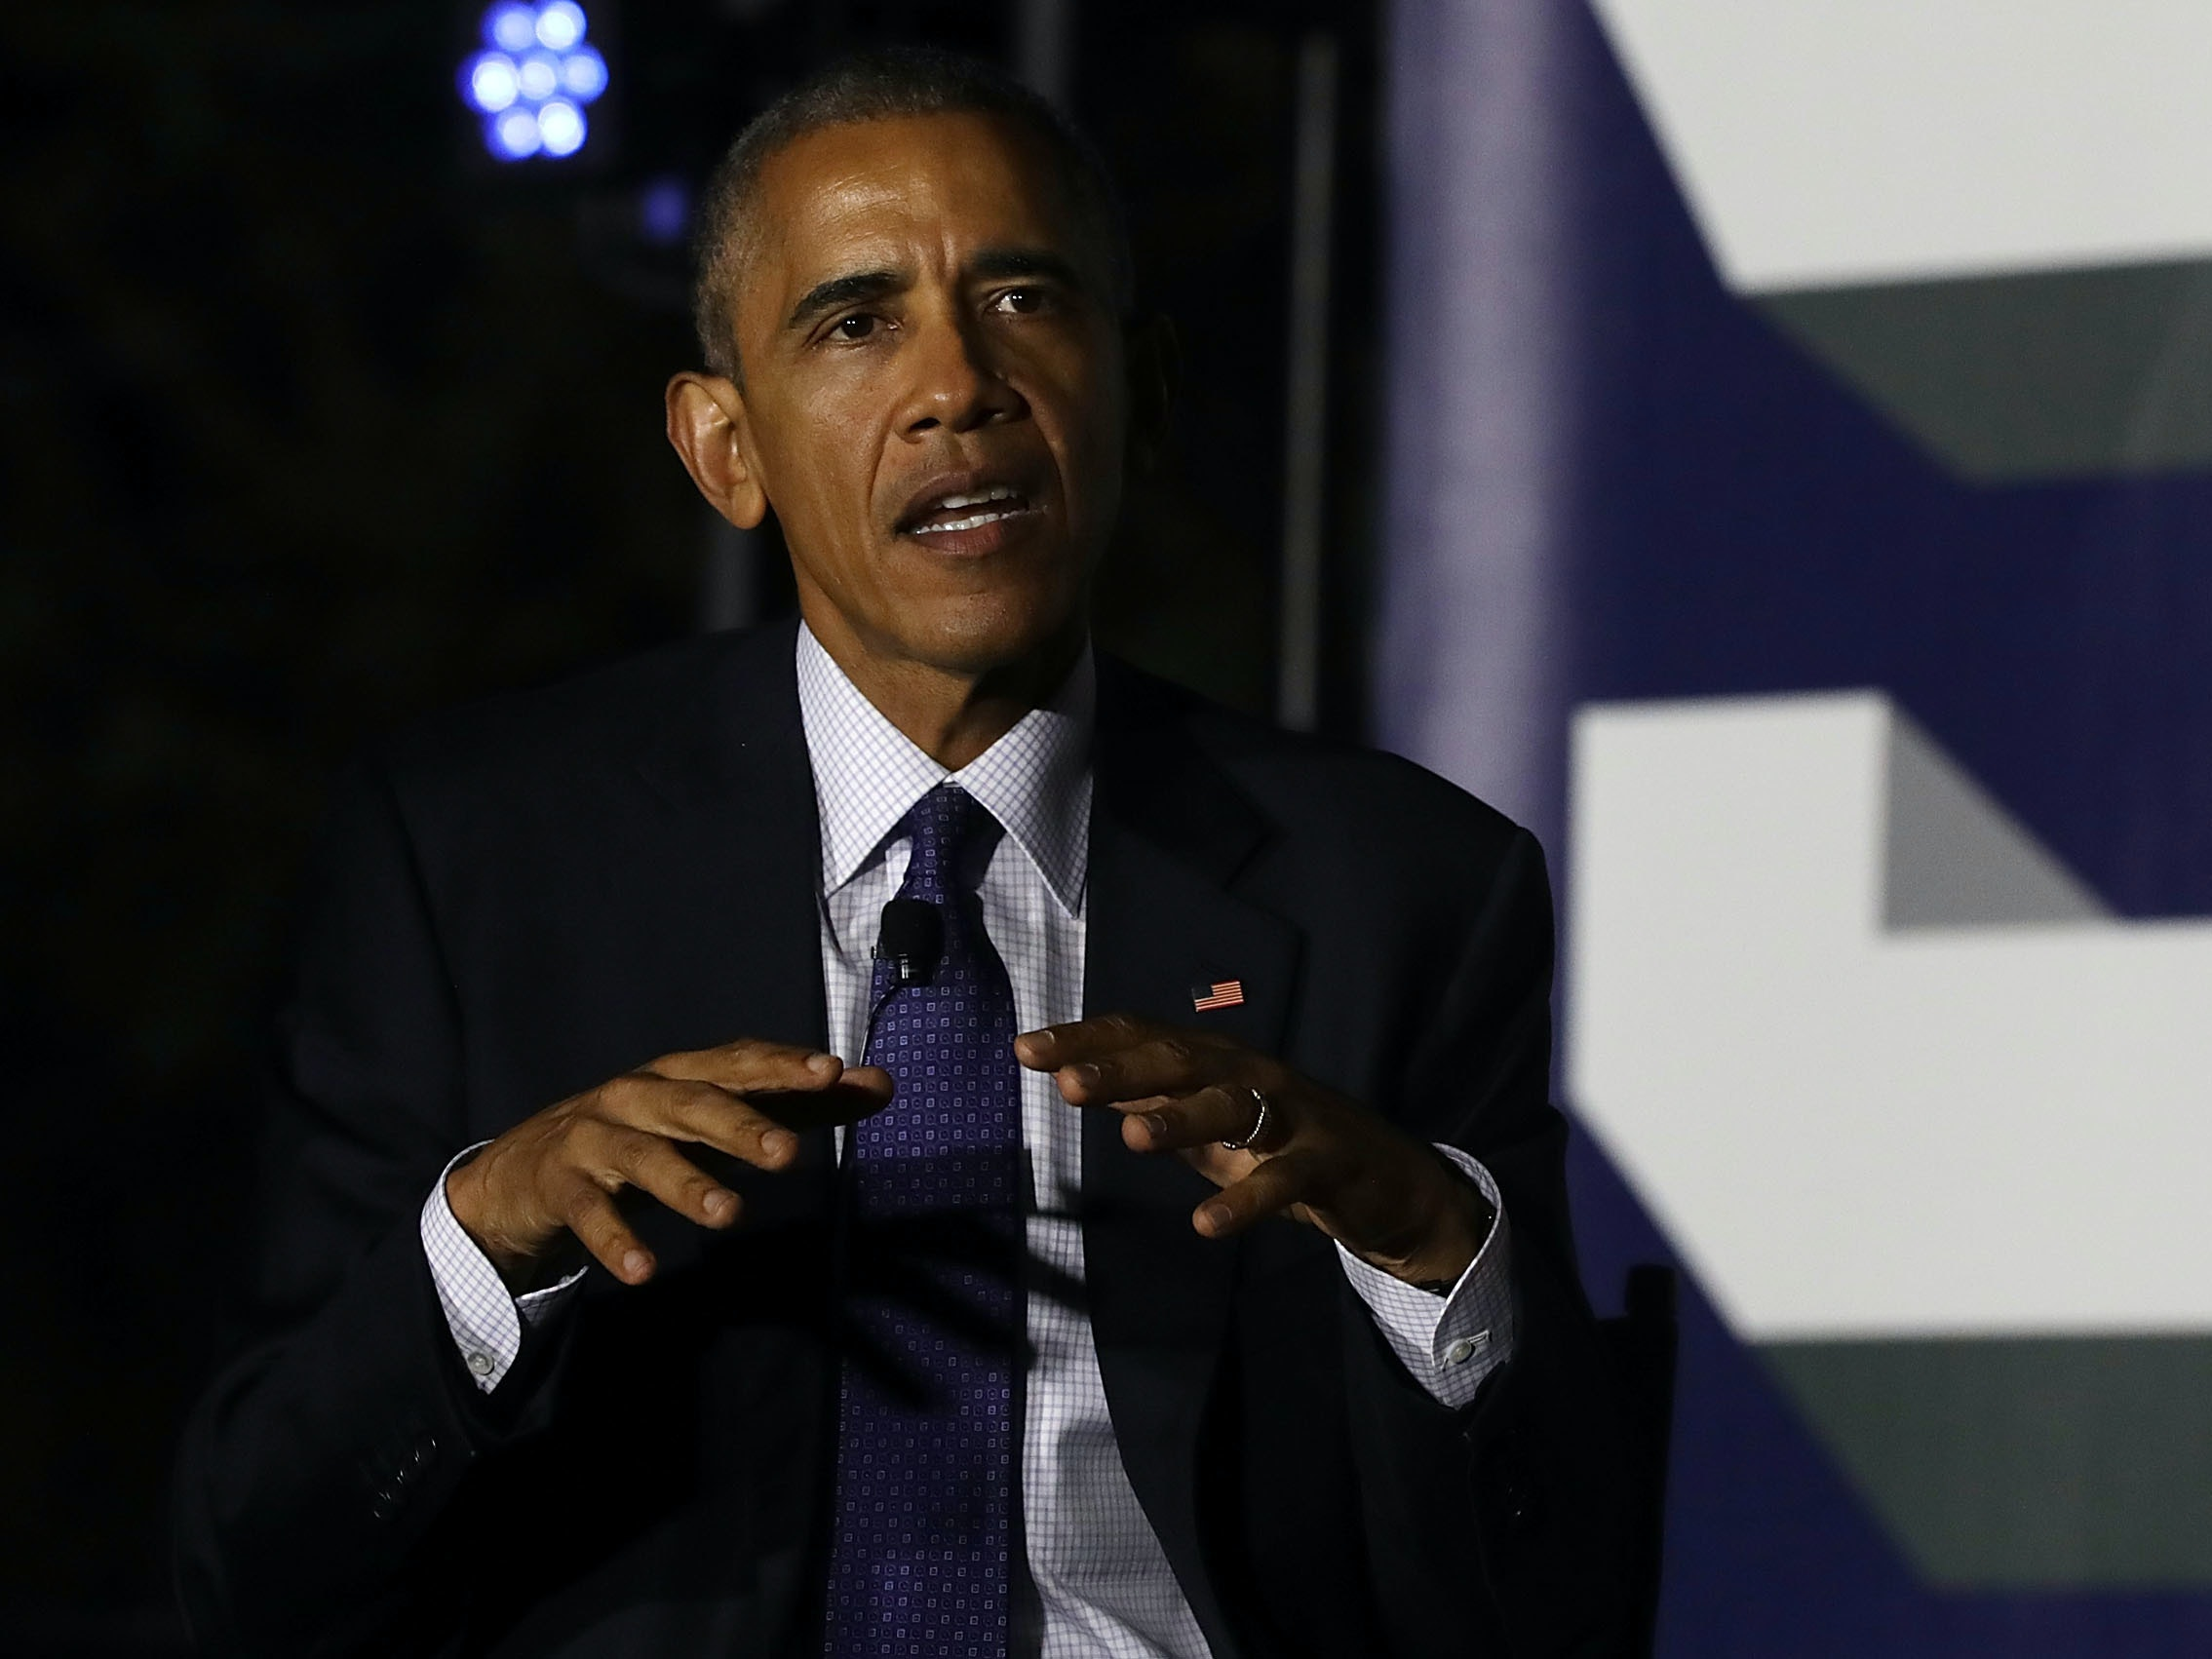 Obama discussed climate change at SXSL.